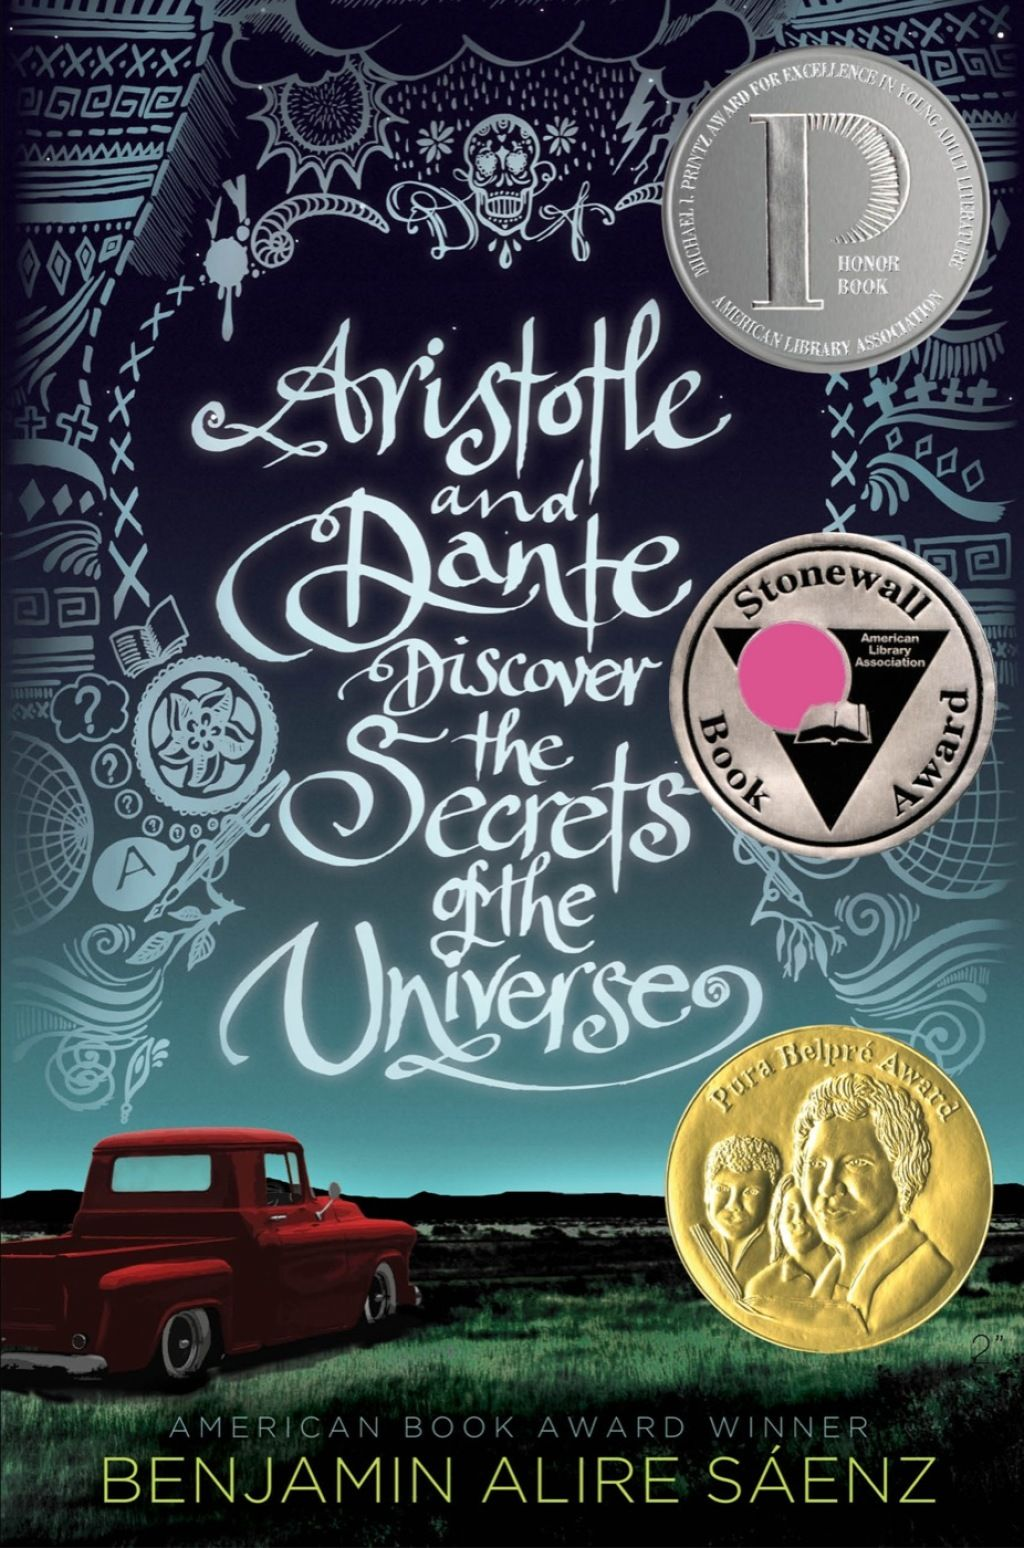 Aristotle and Dante Discover the Secrets of the Universe (eBook) is part of Romantic books - By Benjamin Alire Sáenz PRINT ISBN 9781442408937 ETEXT ISBN 9781442408944 Edition 0